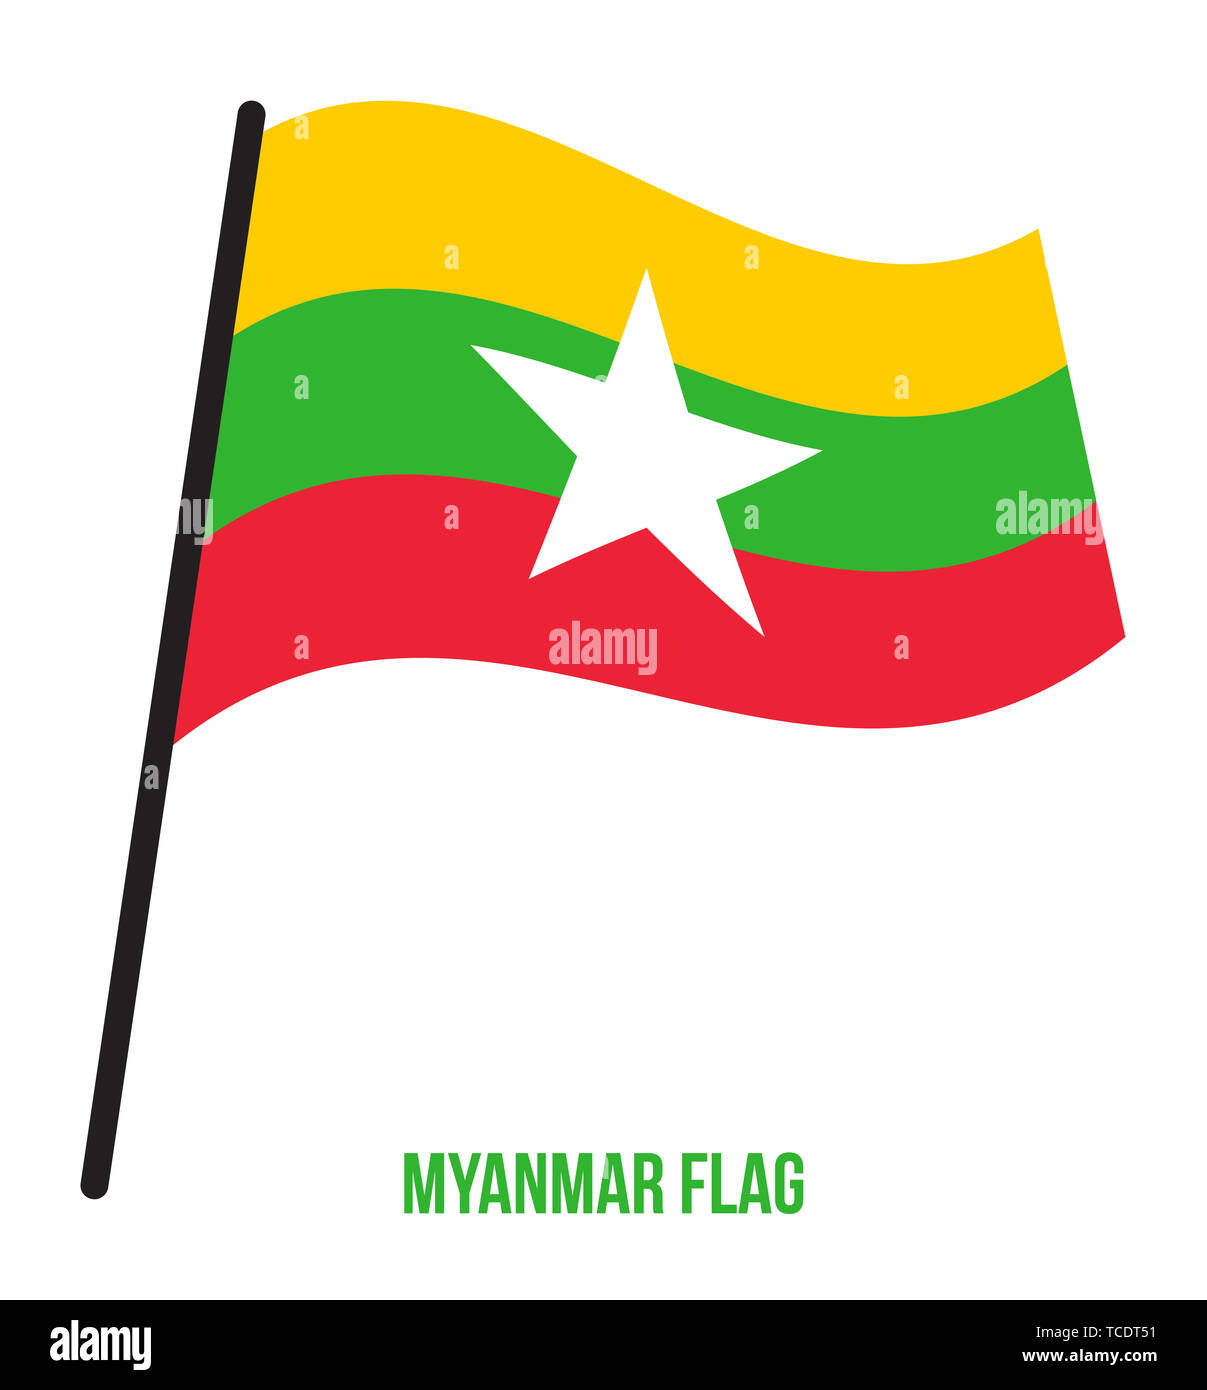 Myanmar Flag Waving Vector Illustration on White Background. Myanmar National Flag. - Stock Image